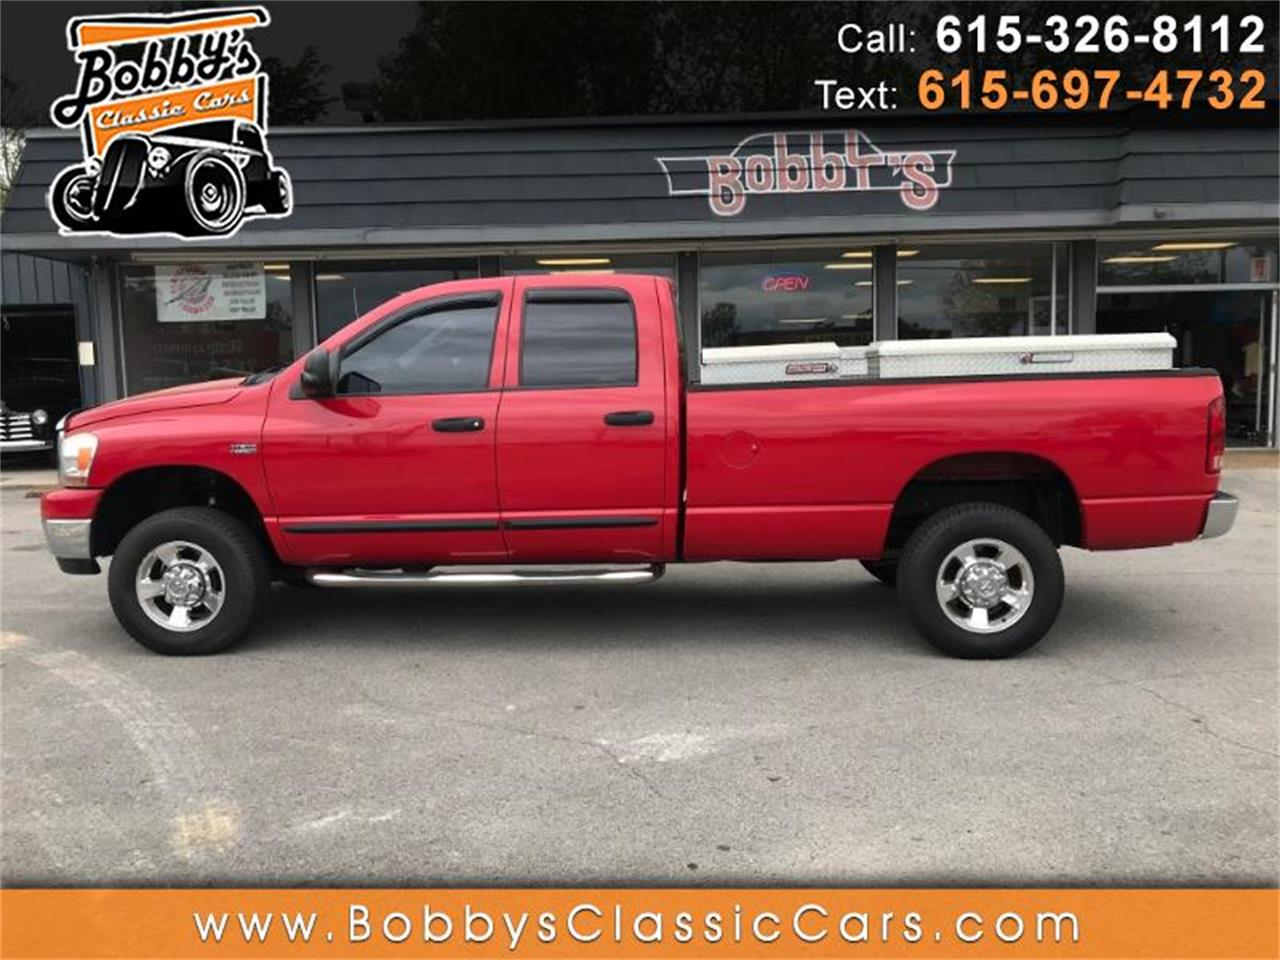 2006 Dodge Ram 2500 (CC-1211061) for sale in Dickson, Tennessee